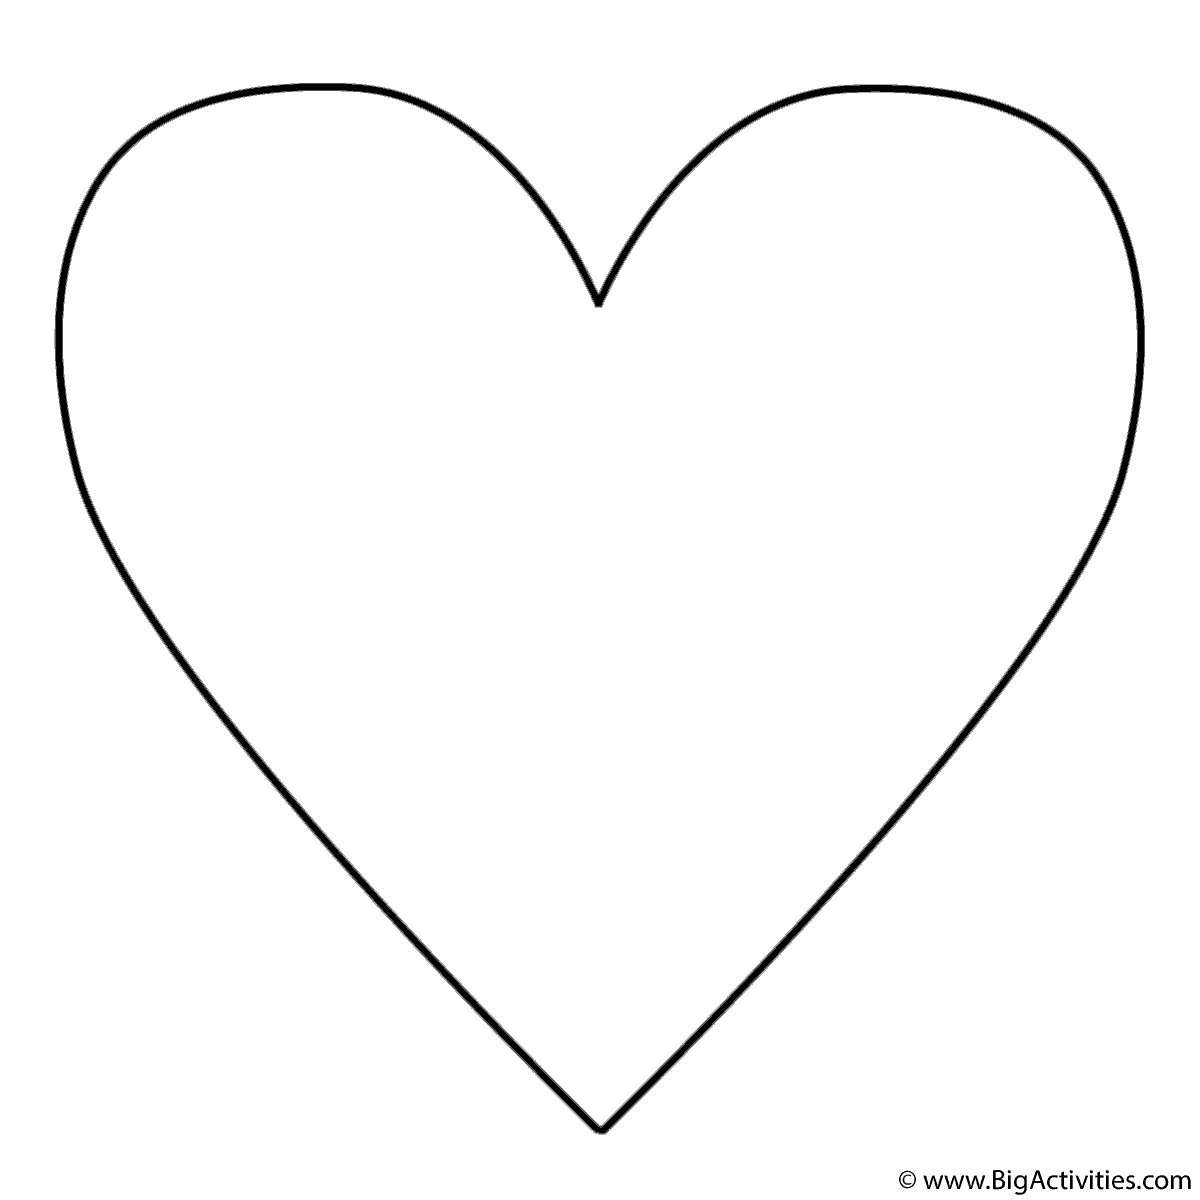 - Simple Heart - Coloring Page Mother's Day, Mothers Day Coloring